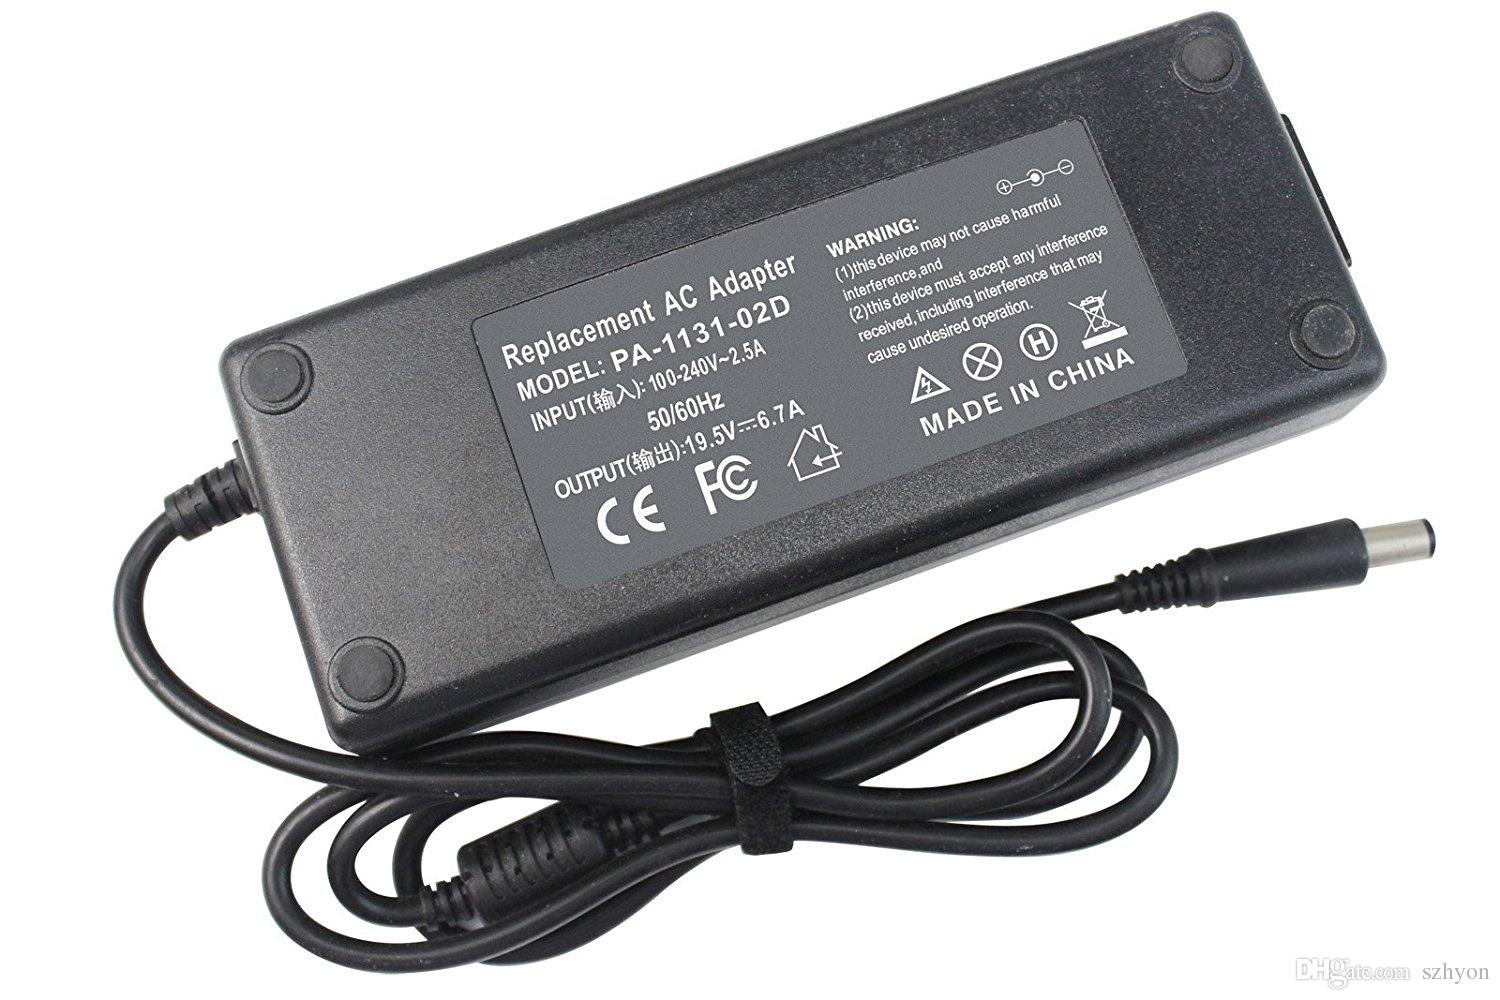 2019 19 5v 6 7a 130w For Dell Computer Laptop Charger Adapter Power